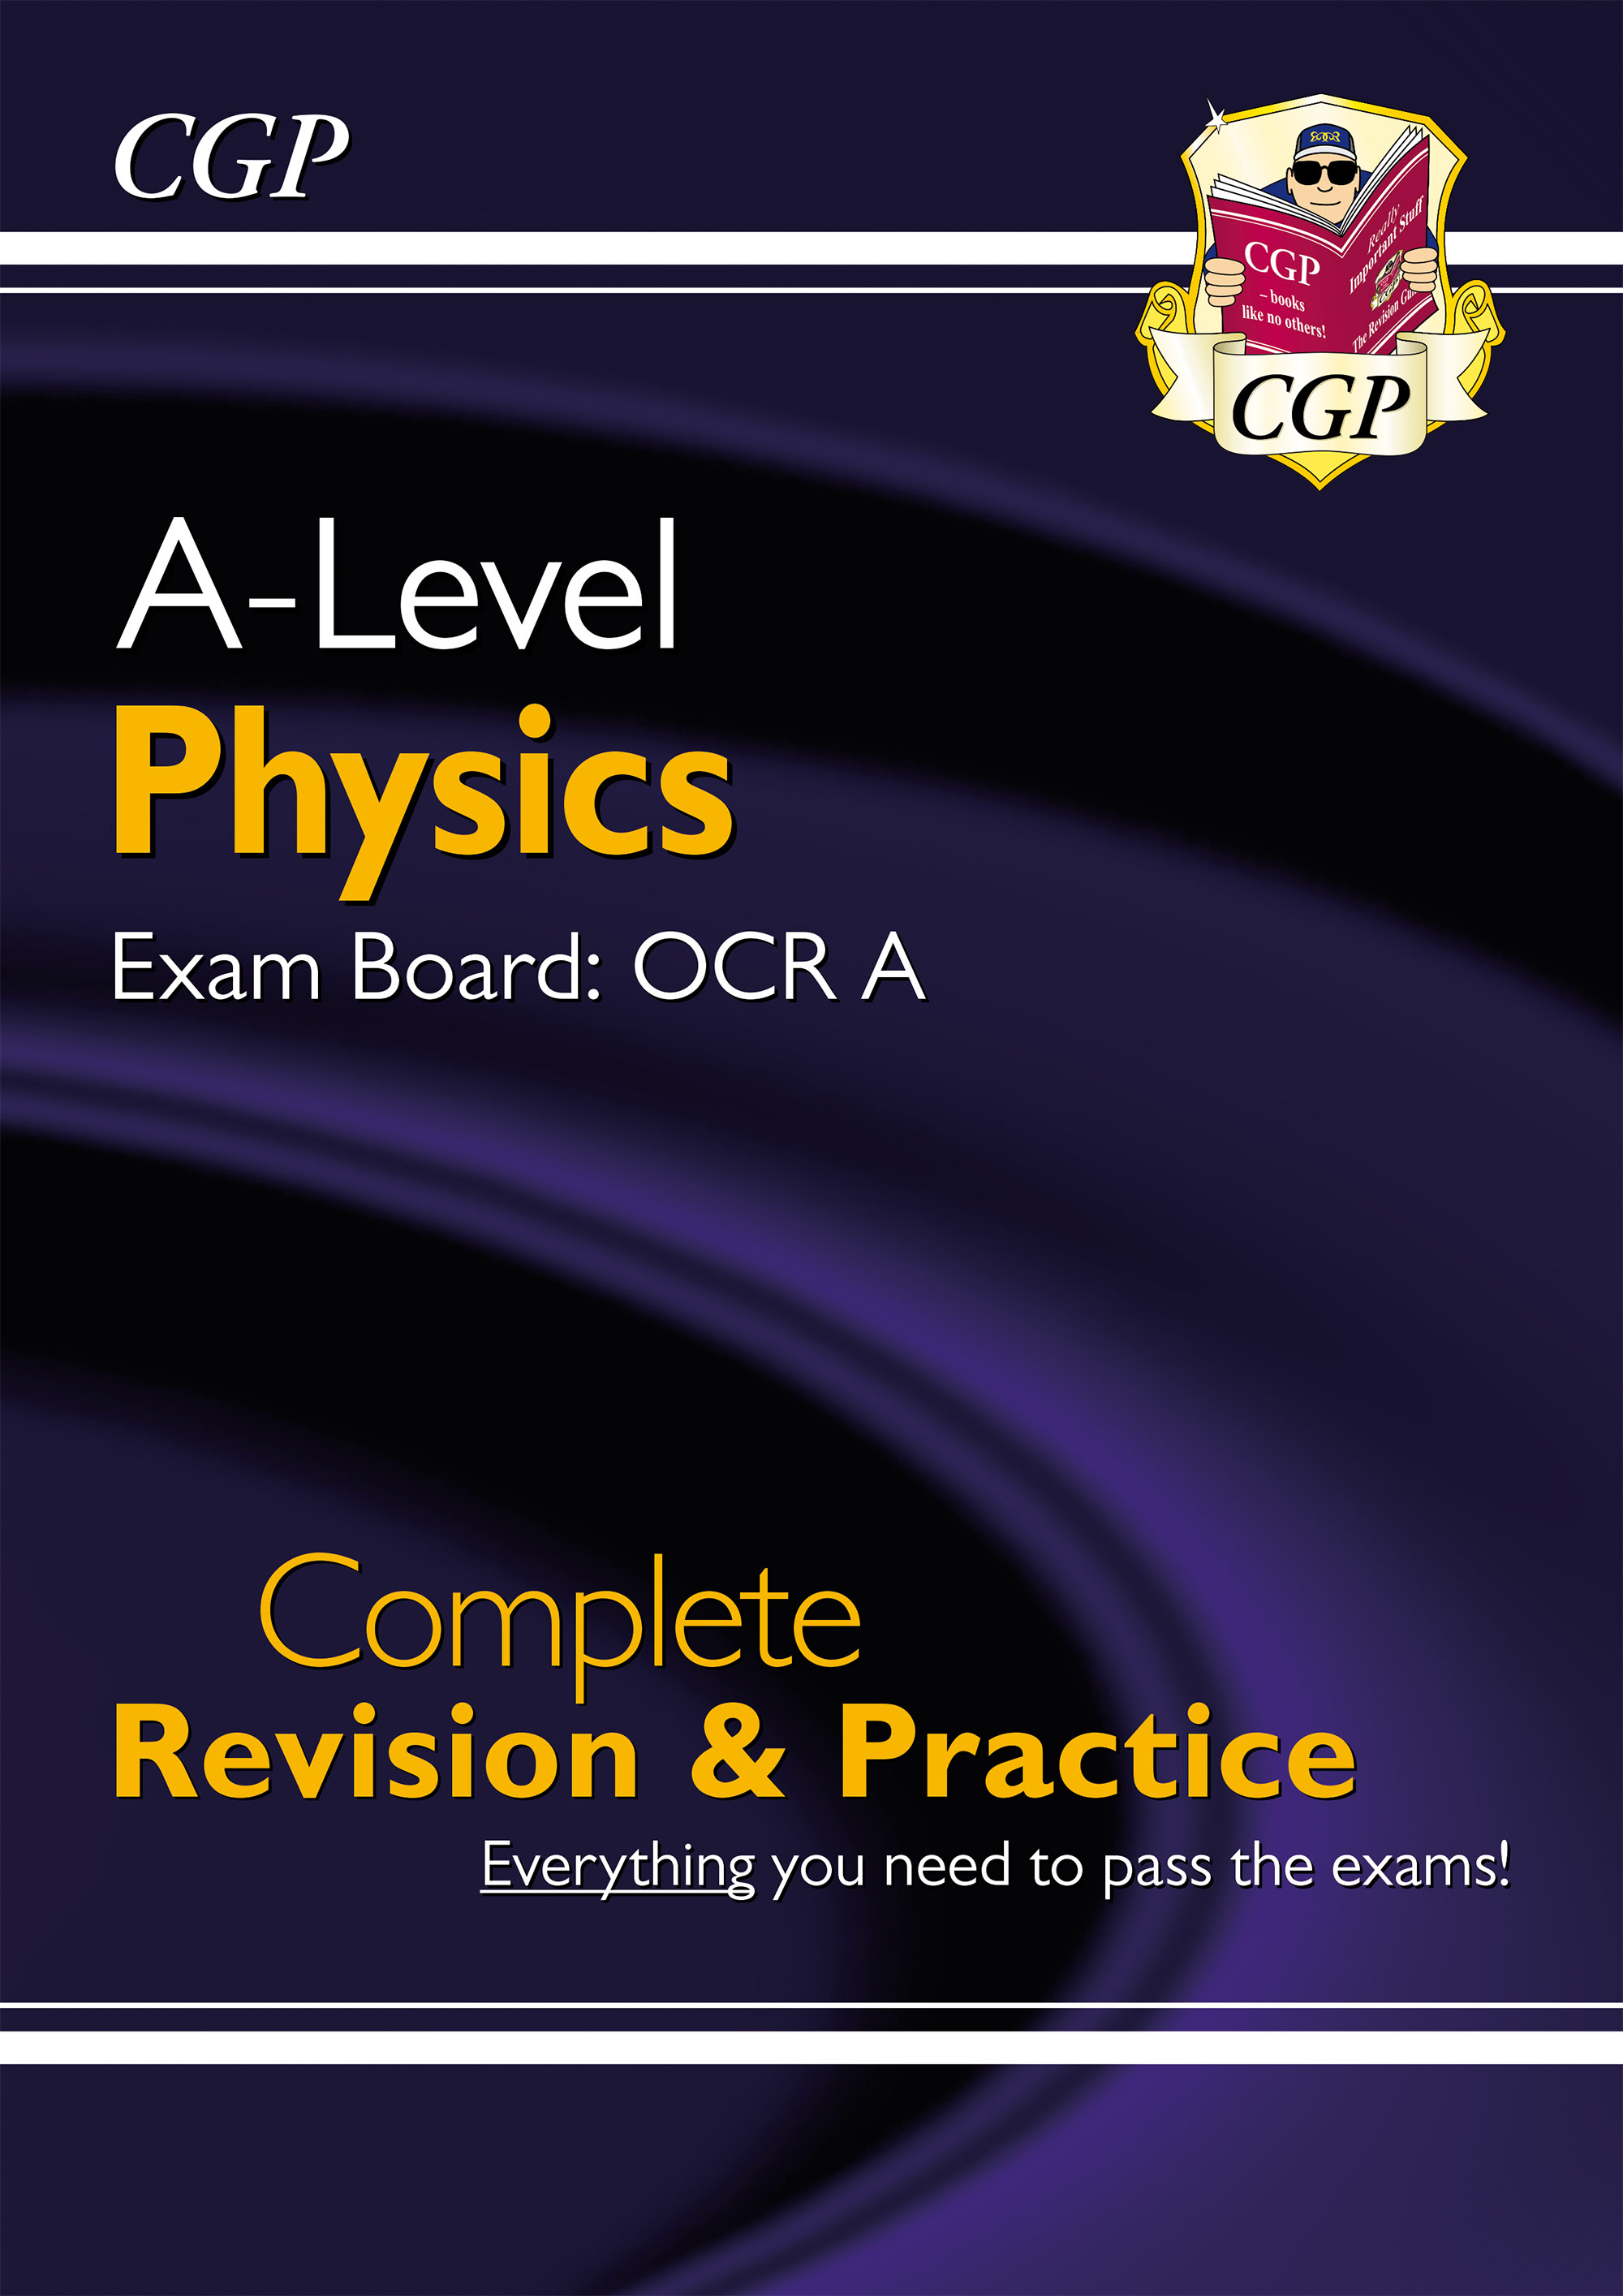 PRAR73DK - New A-Level Physics for 2018: OCR A Year 1 & 2 Complete Revision & Practice